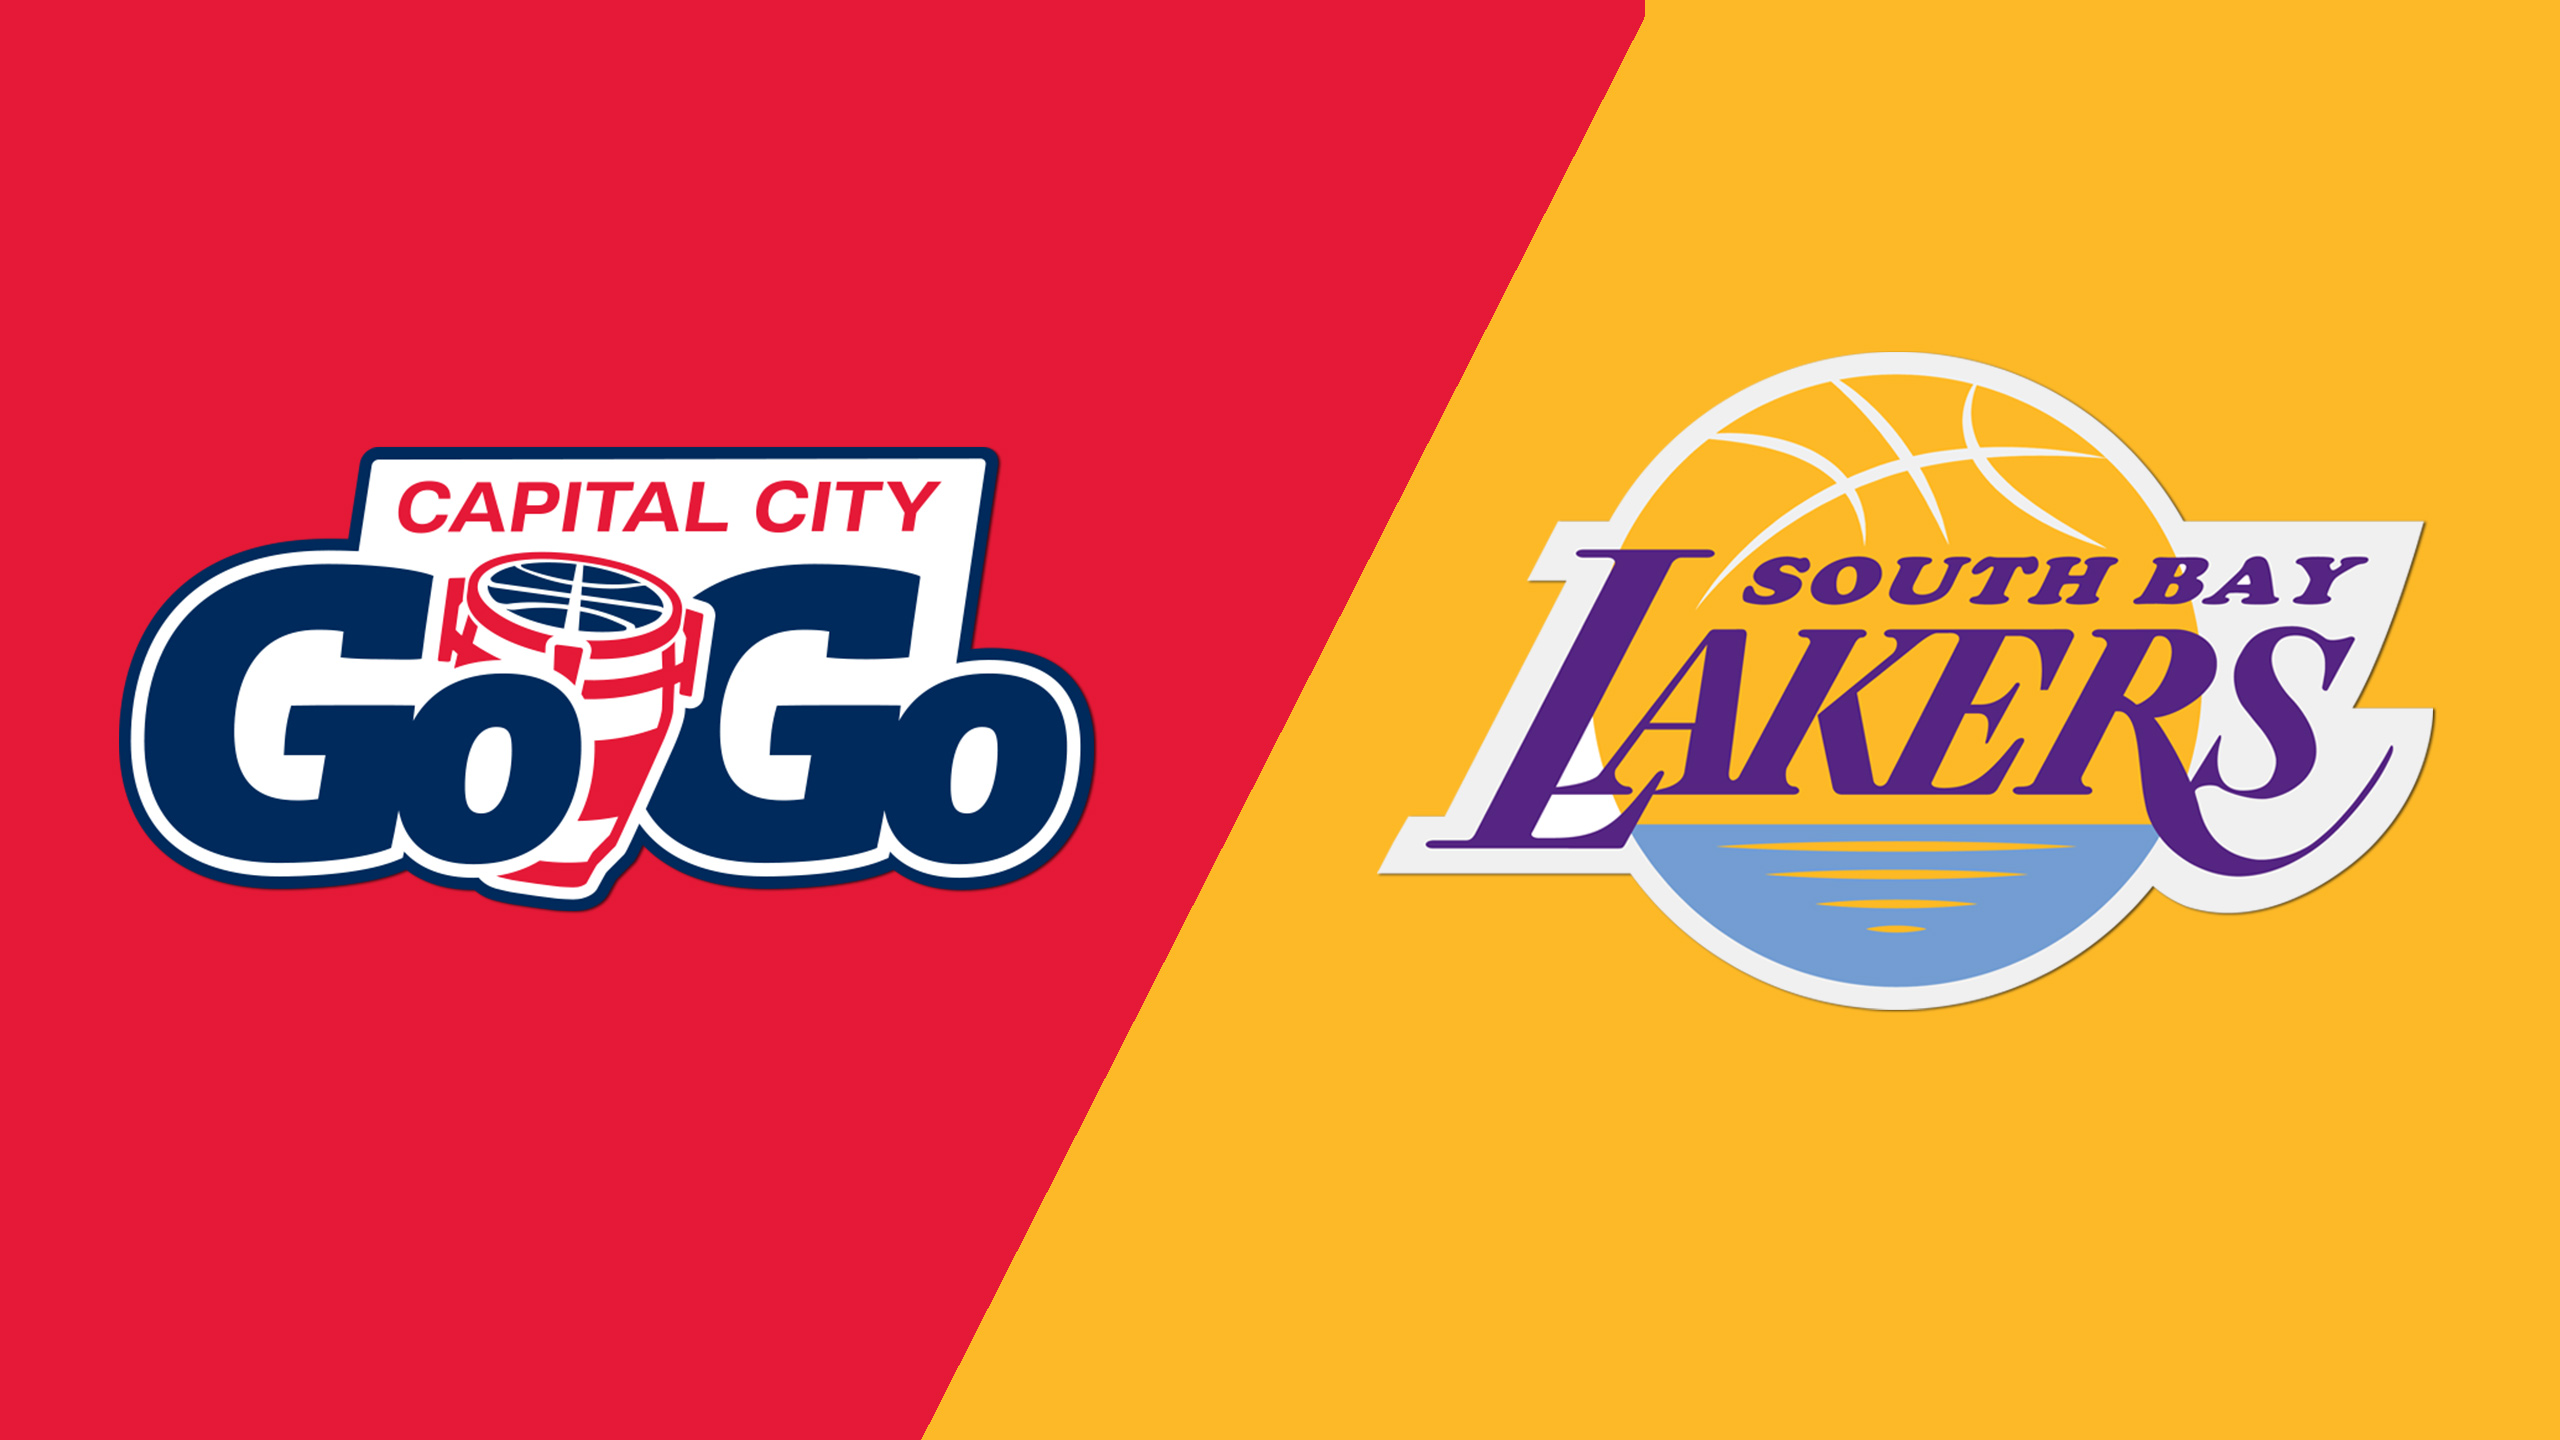 Capital City Go-Go vs. South Bay Lakers